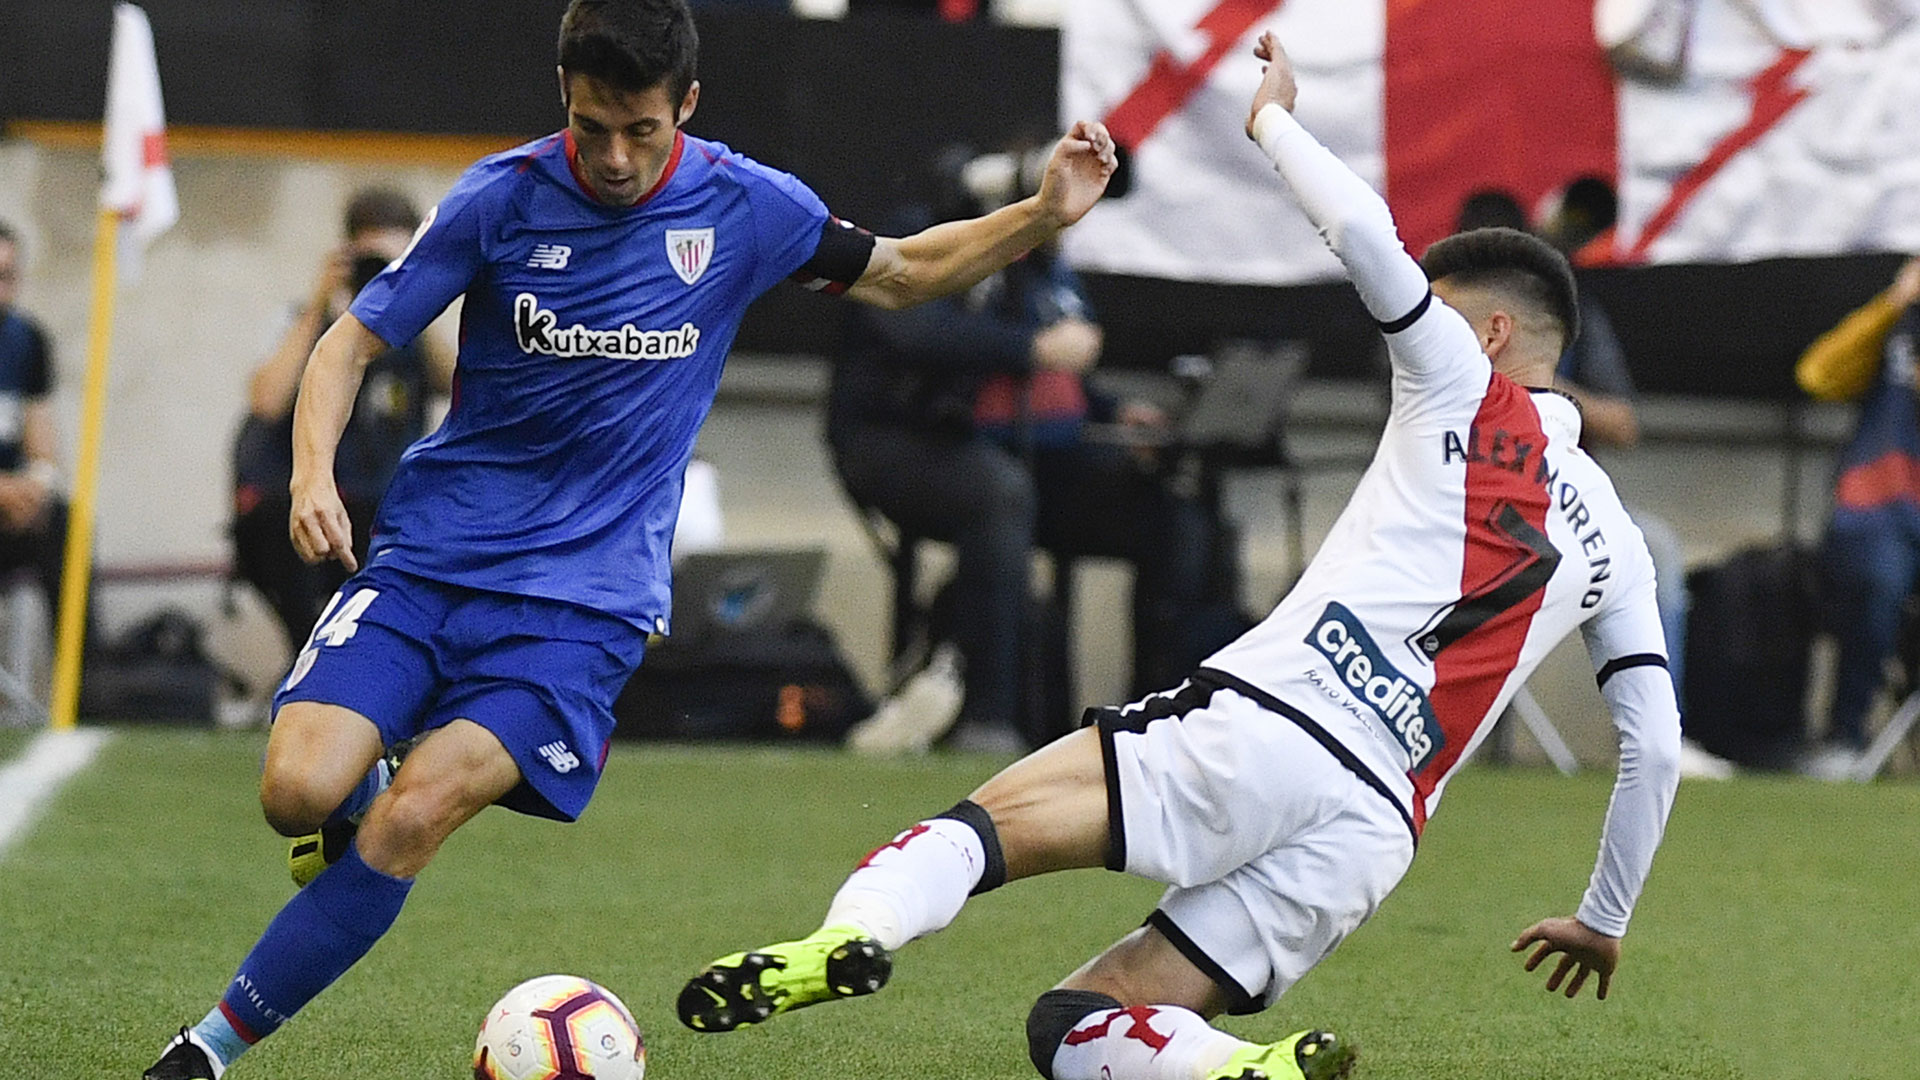 Athletic Club – Rayo Vallecano, txartel lagapena